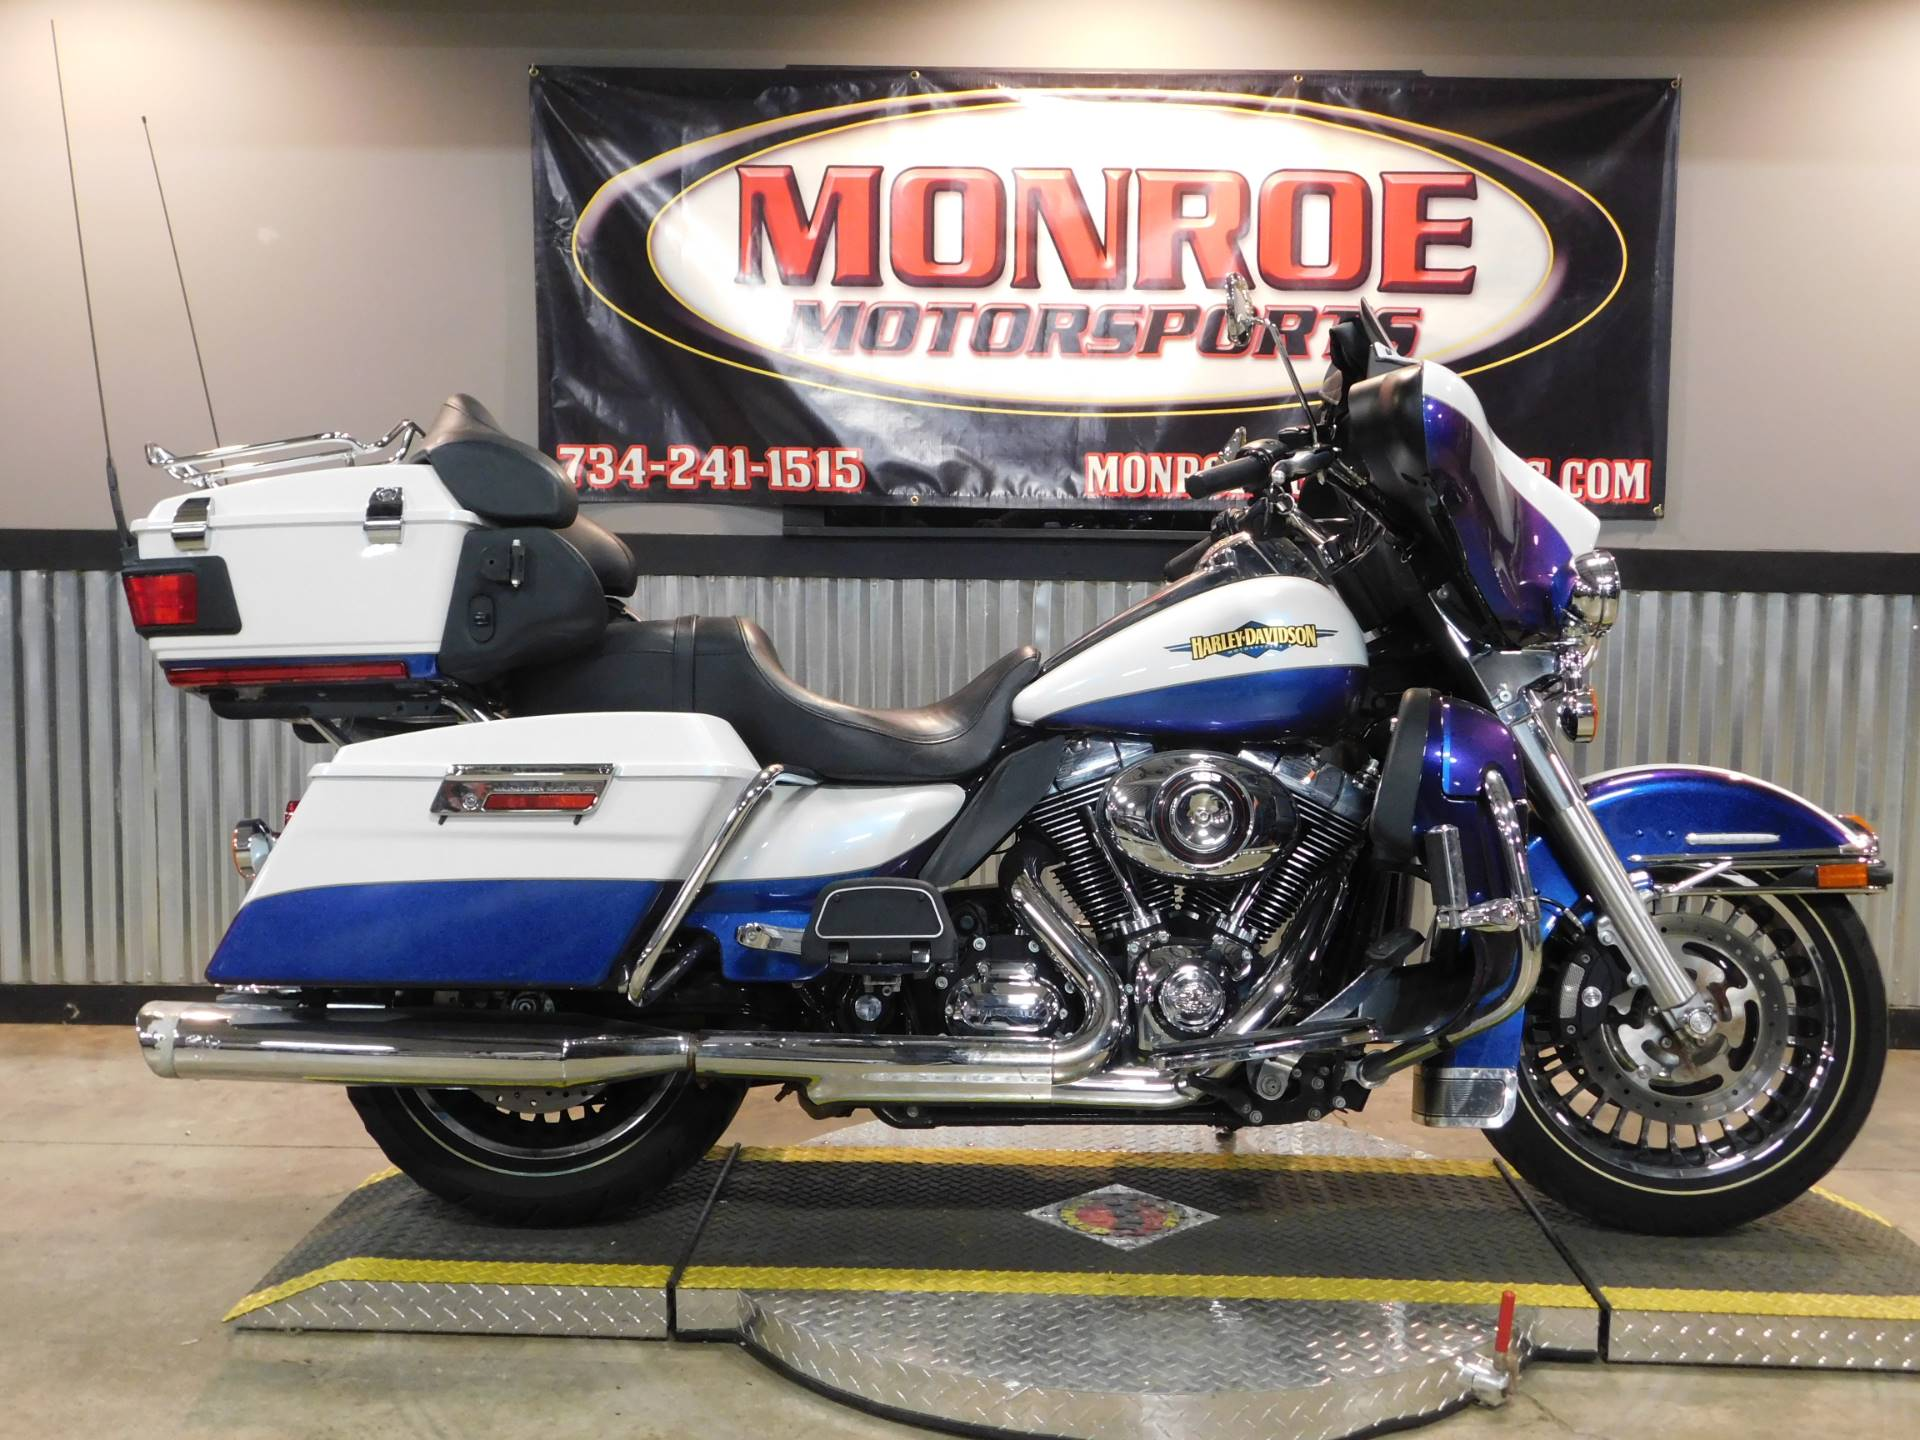 2010 Harley-Davidson Electra Glide® Ultra Limited in Monroe, Michigan - Photo 1